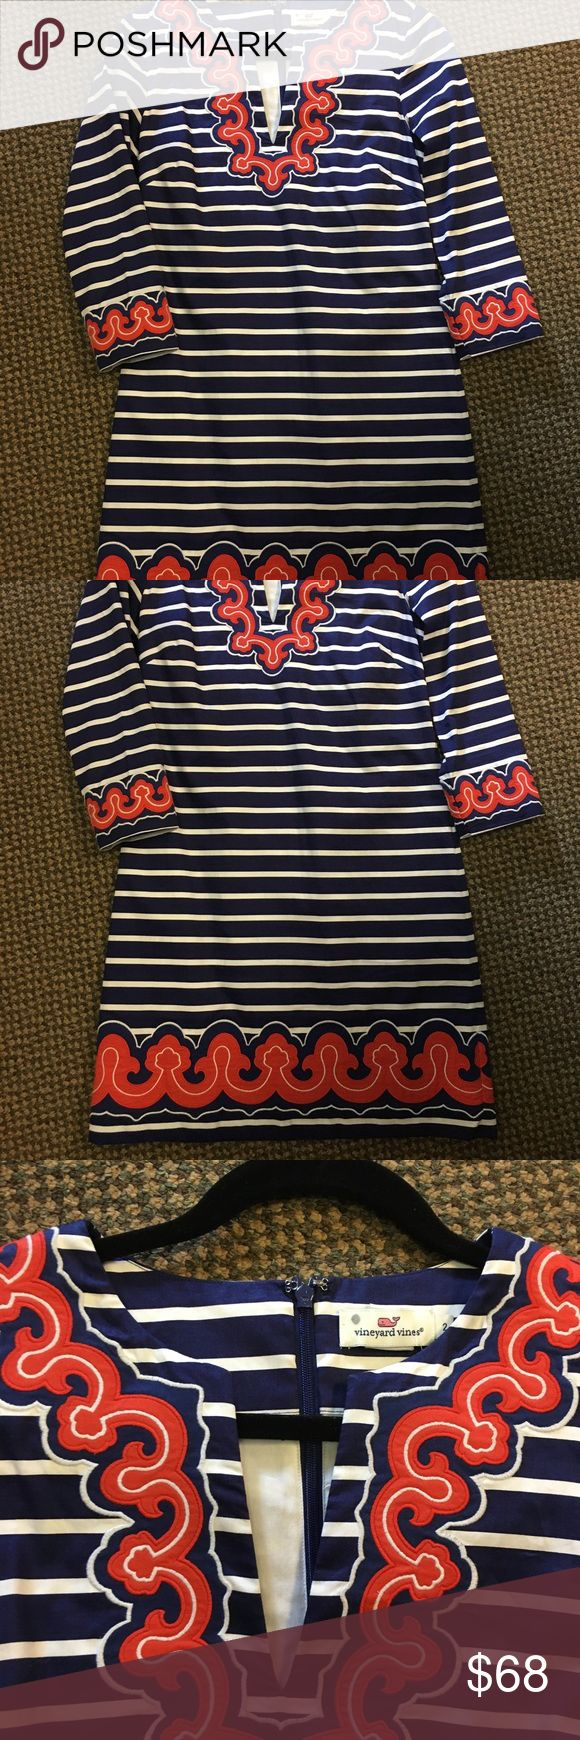 Vineyard Vines Border Print Tunic Dress Navy 2 Style 2Q0380. With nautical stripes and feminine pink printed details, our tunic dresses for women have enough character to speak for themselves. Pair with flat sandals or wedges and you're set for any occasion!  Fabrics: · 96% cotton, 4% spandex  Features: · Center back zipper · Center back length: 34 3/4 (based off size 6) · Imported   Care Instructions: · Machine wash Vineyard Vines Dresses Mini